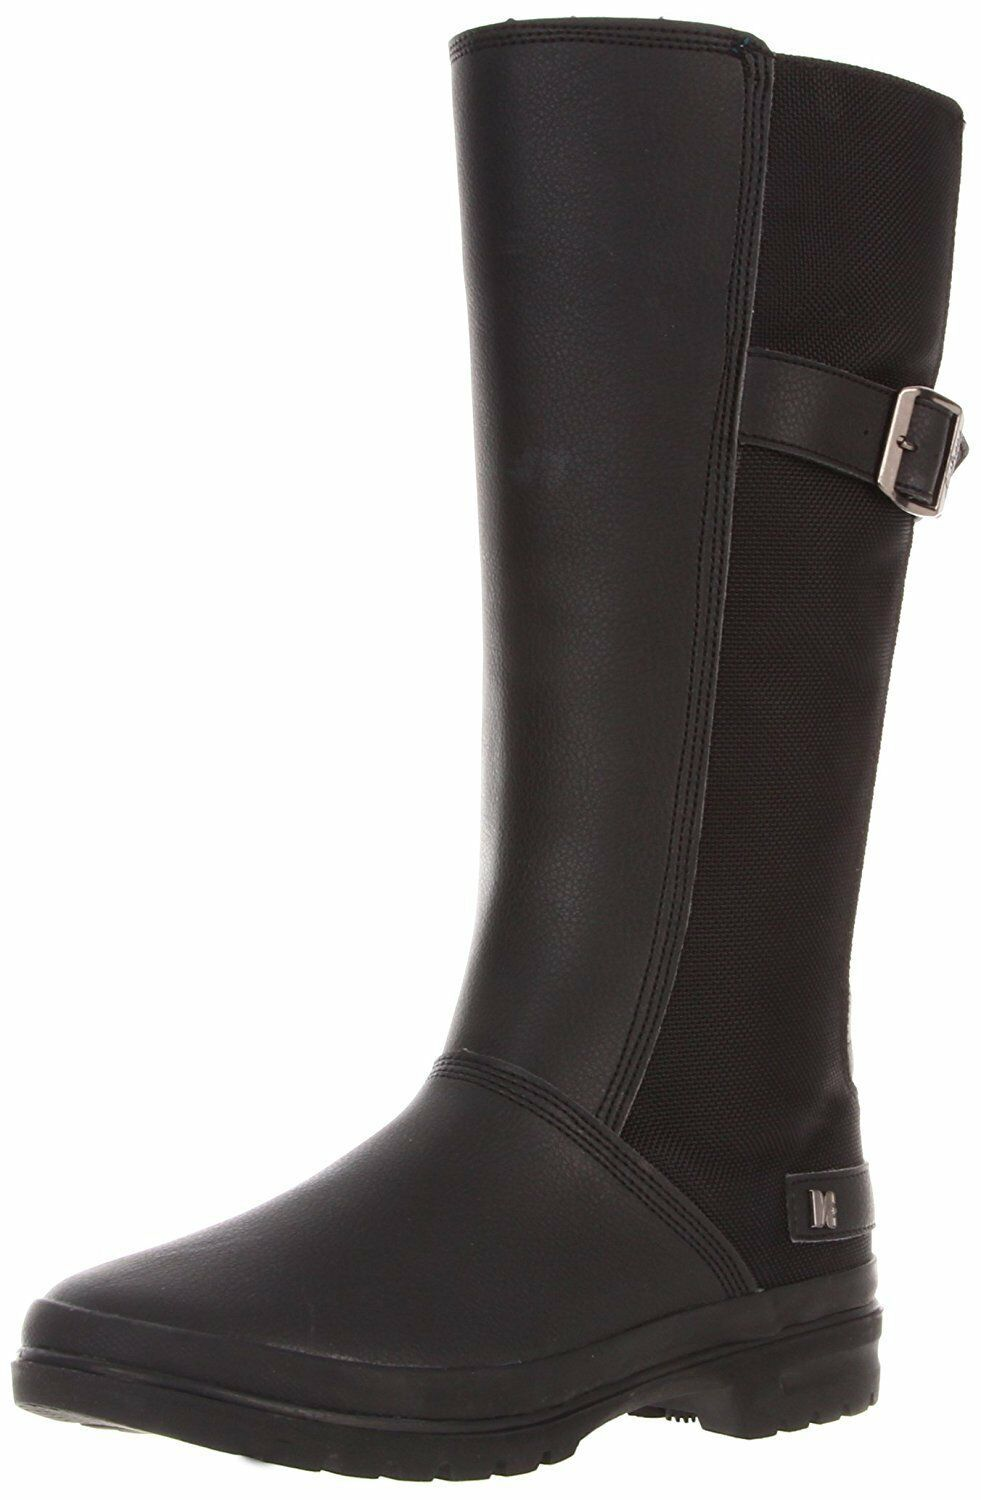 DC Women's Black Flex J Mid Calf Synthetic Boots New in Box